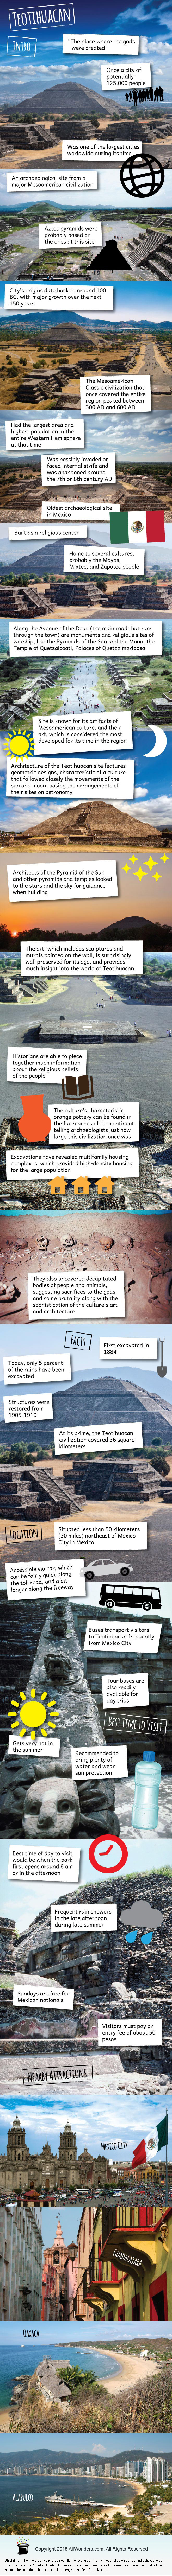 Teotihuacan - Facts & Infographic